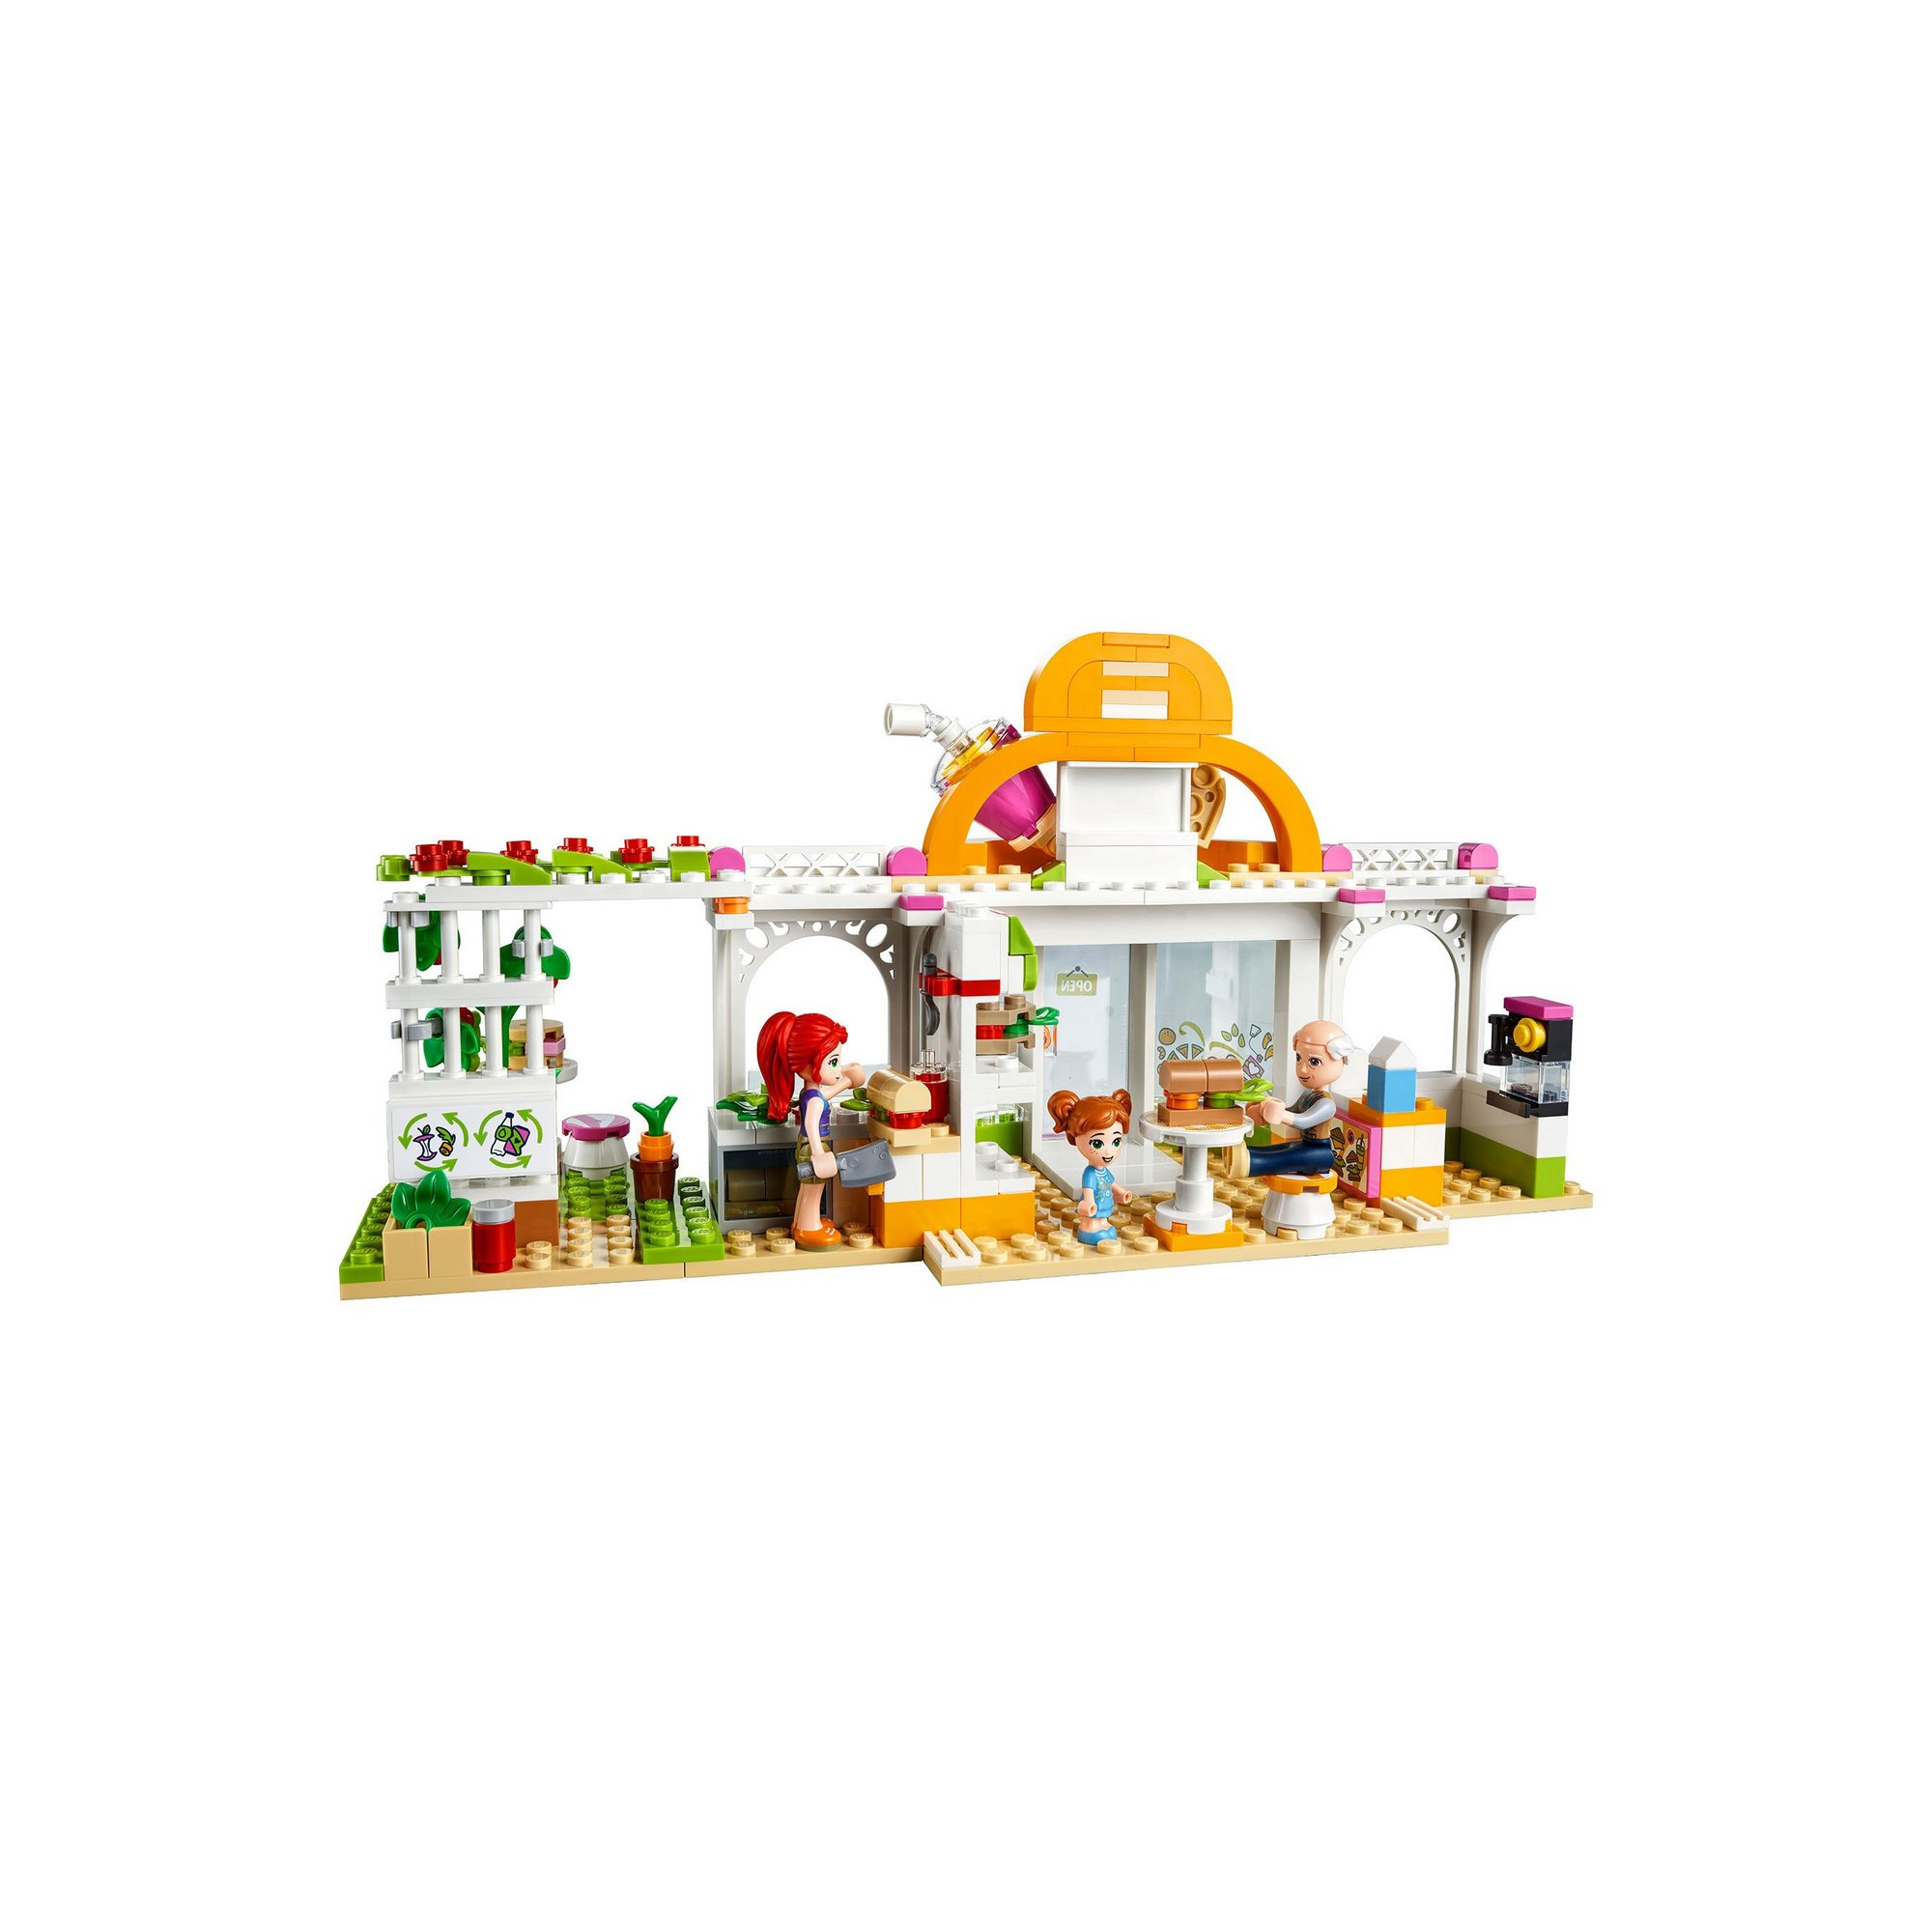 Image of LEGO Friends Heartlake City Organic Cafe